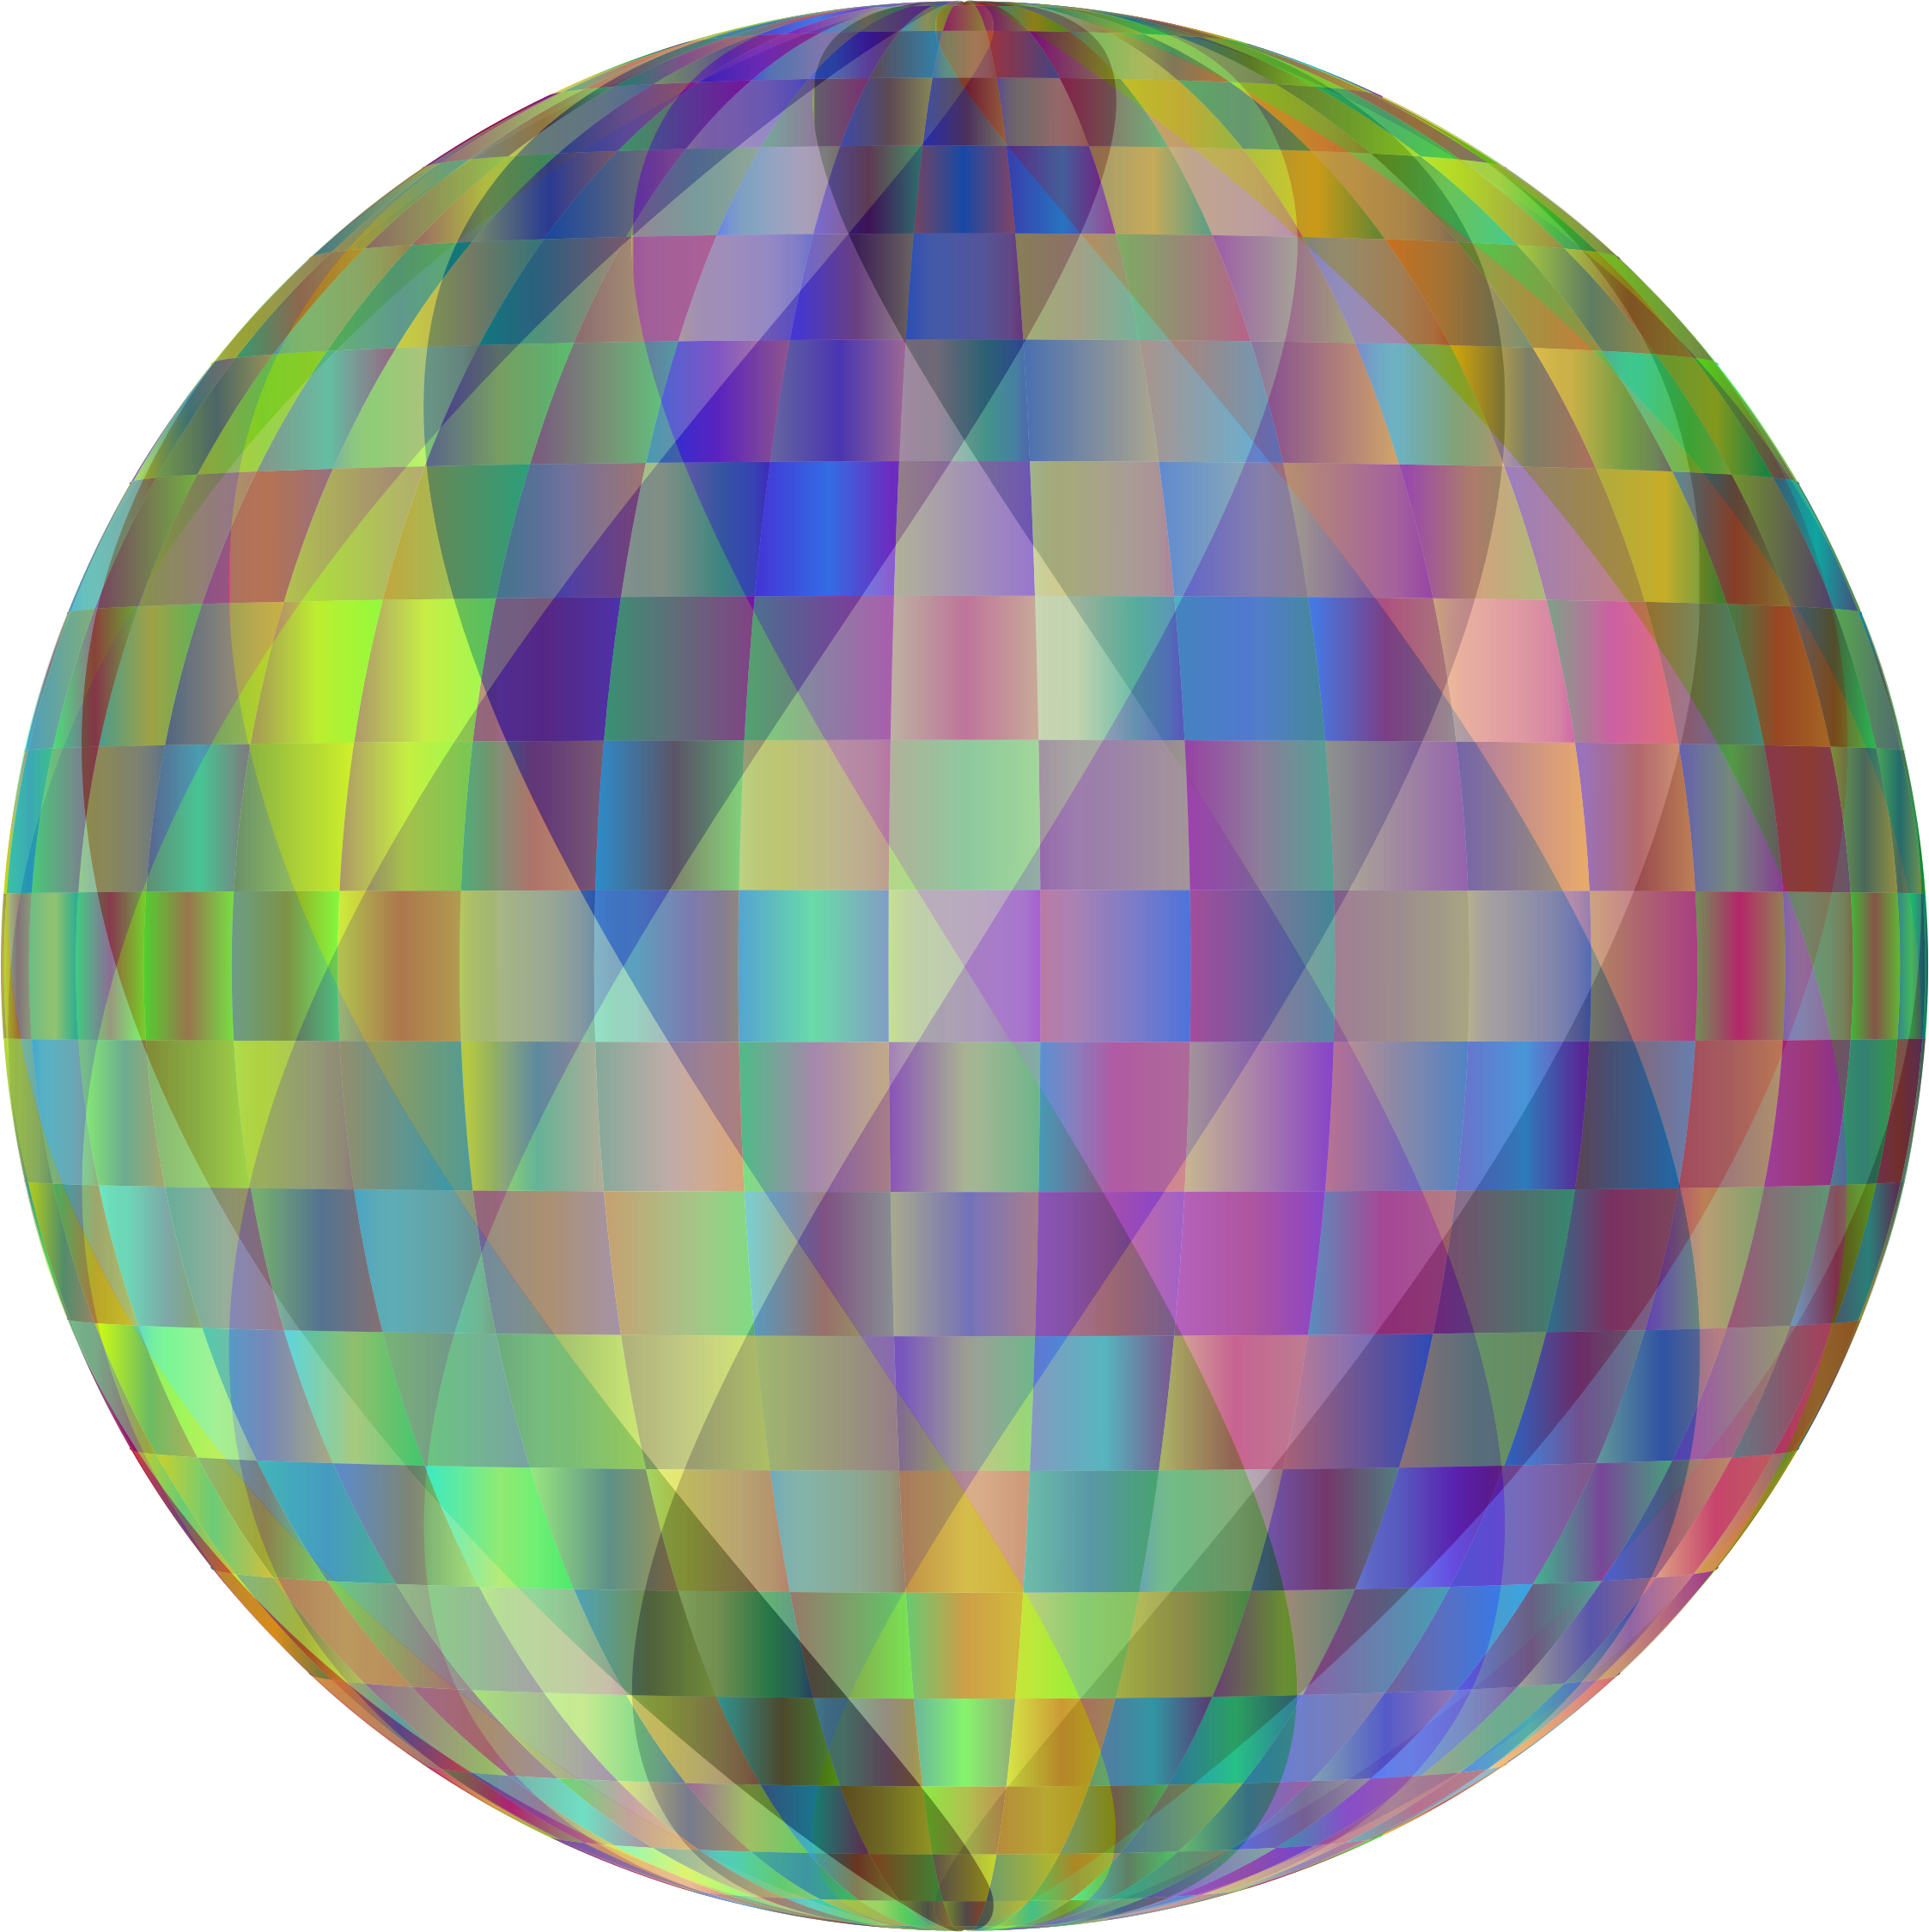 Prismatic Abstract Geometric Sphere by GDJ